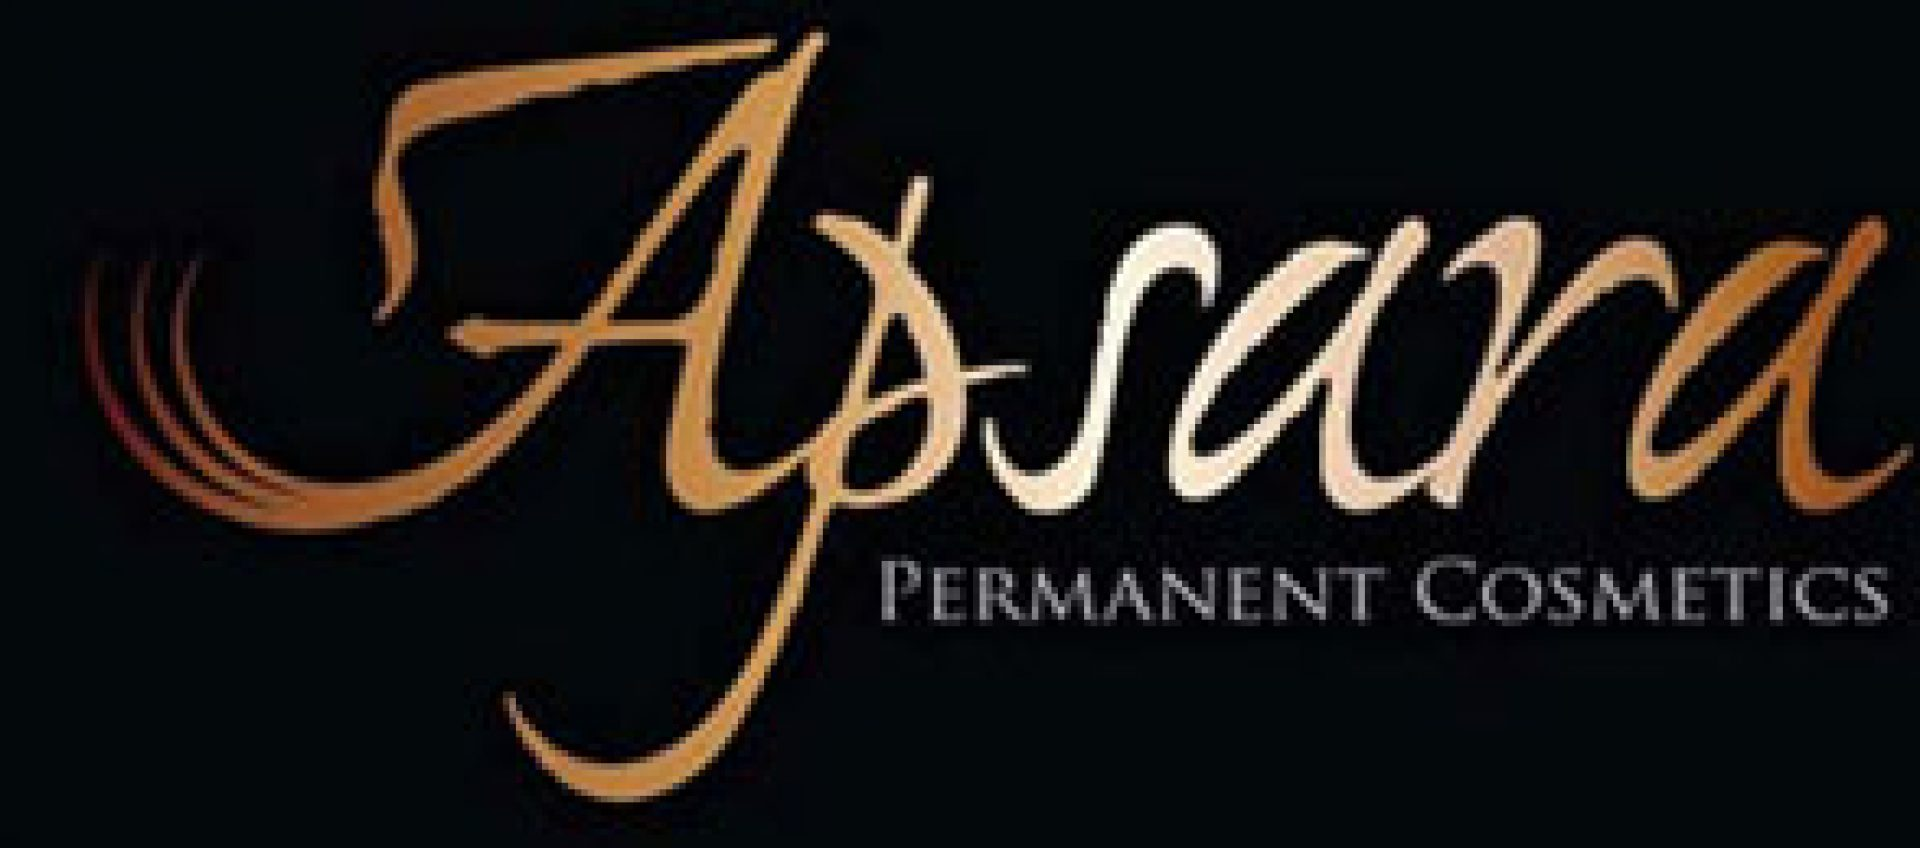 Welcome to Apsara Cosmetics